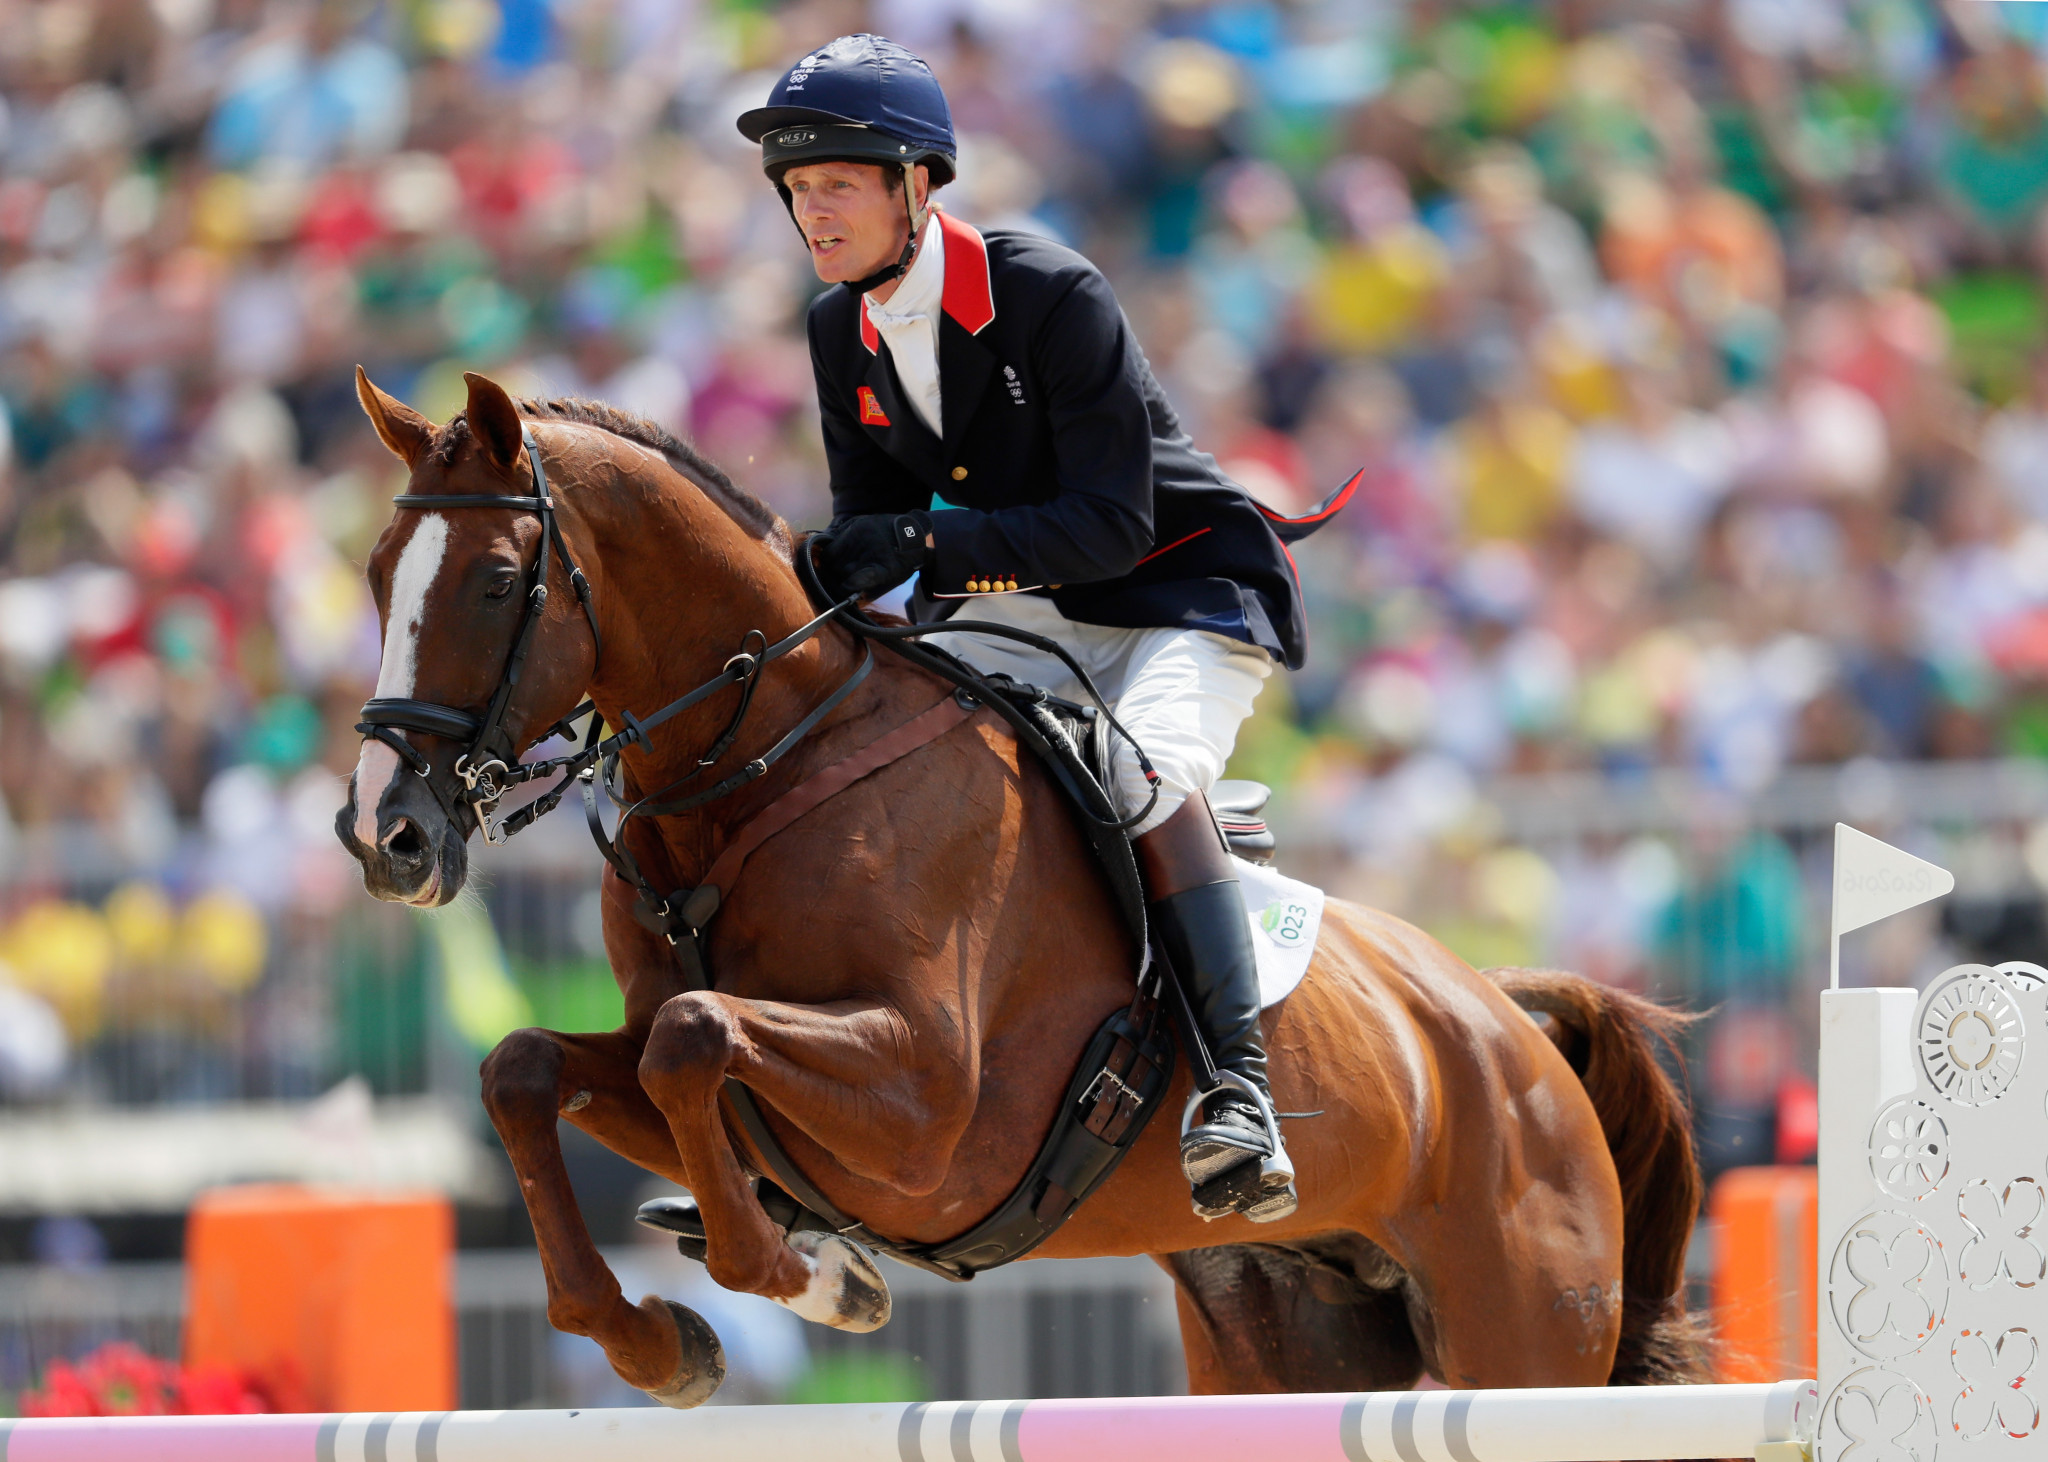 Three-time Olympic medallist William Fox-Pitt has been elected as the eventing representative ©Getty Images